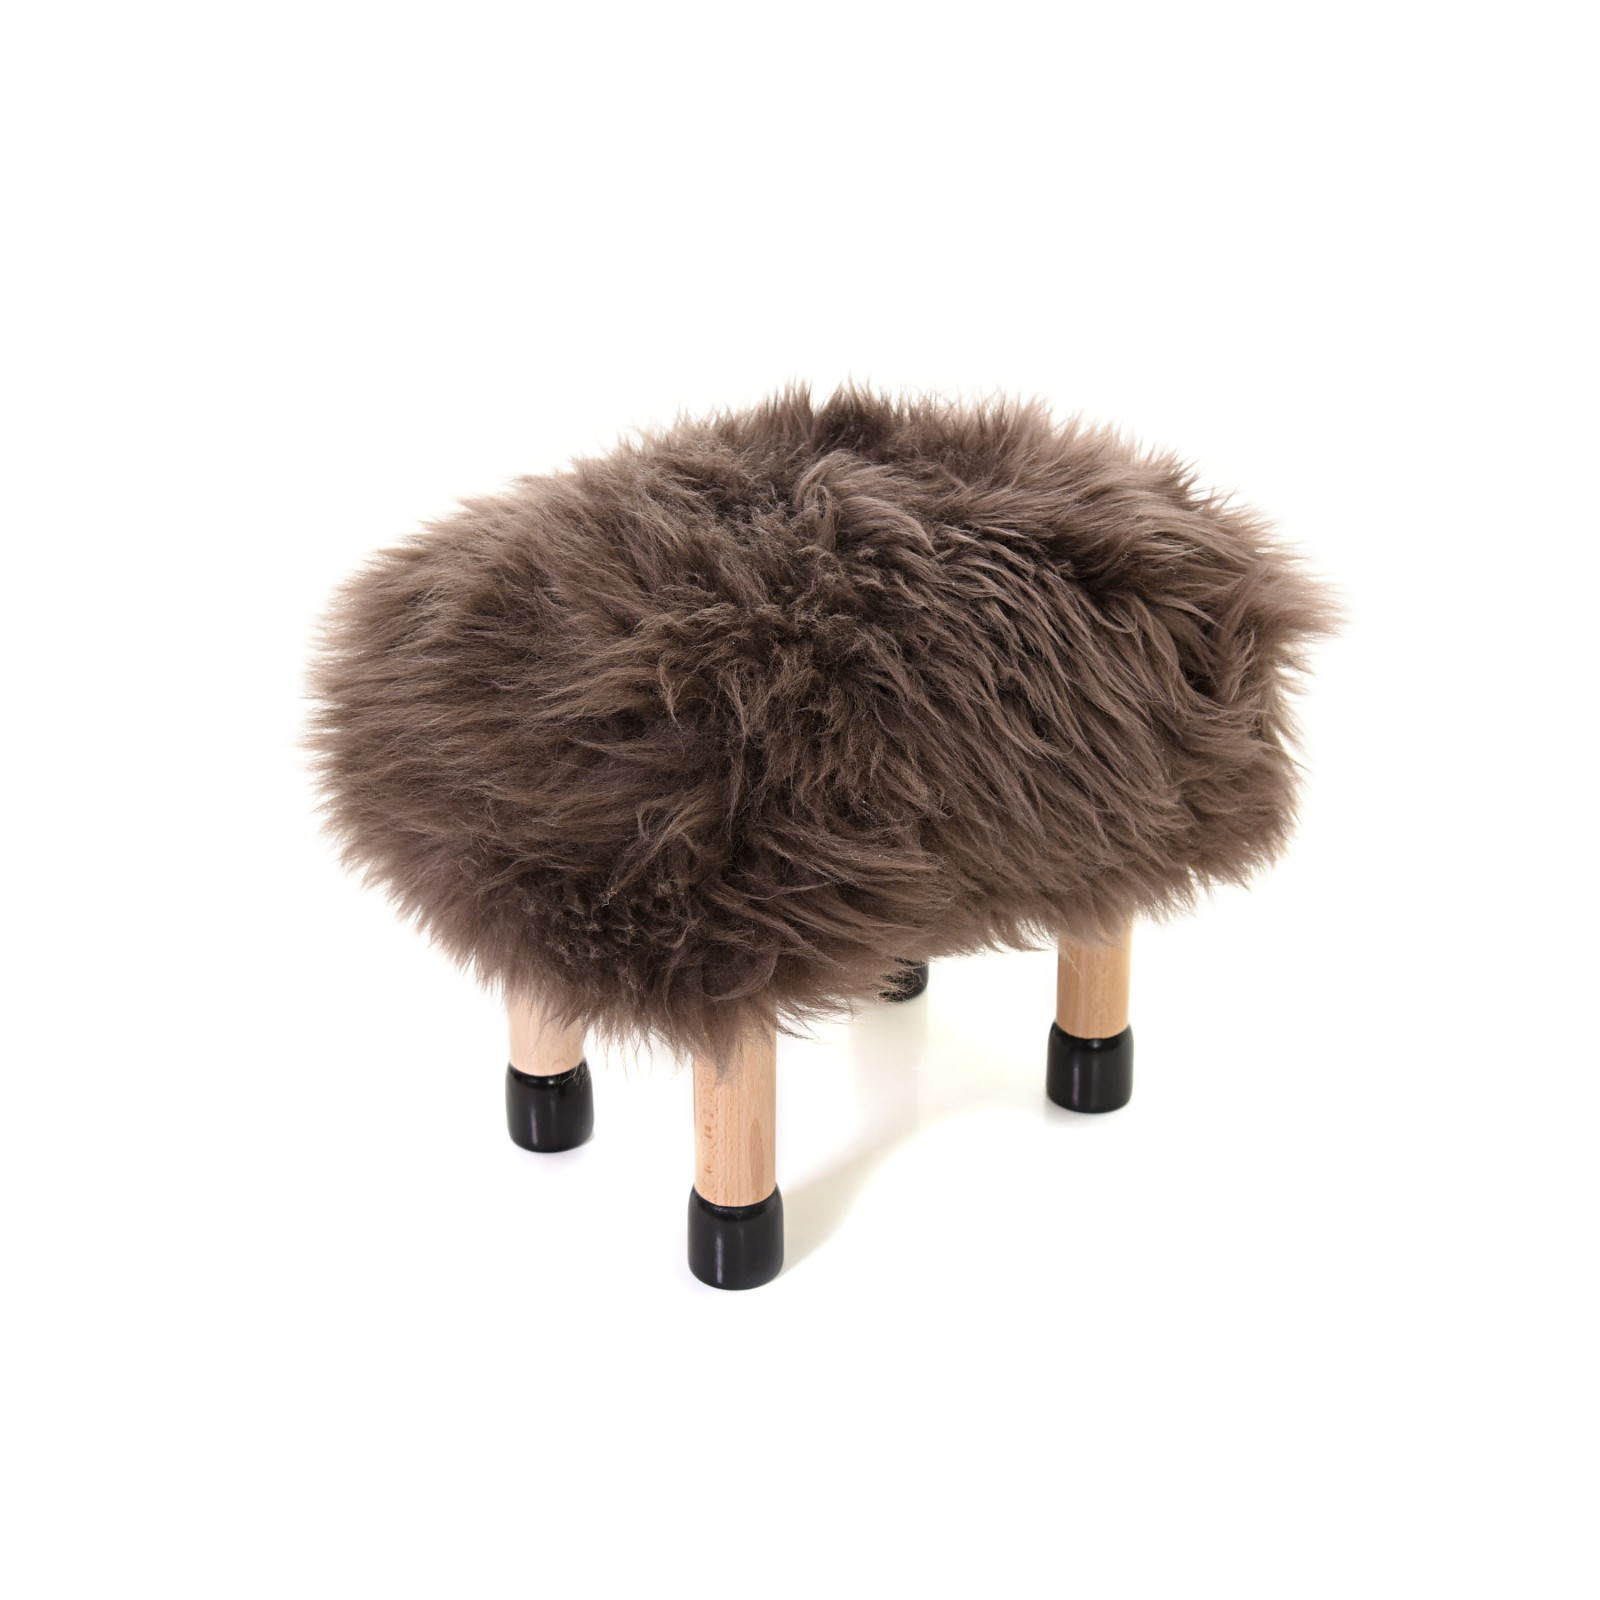 Baby Nia - Children's Sheepskin Stool Baby Nia in Mink